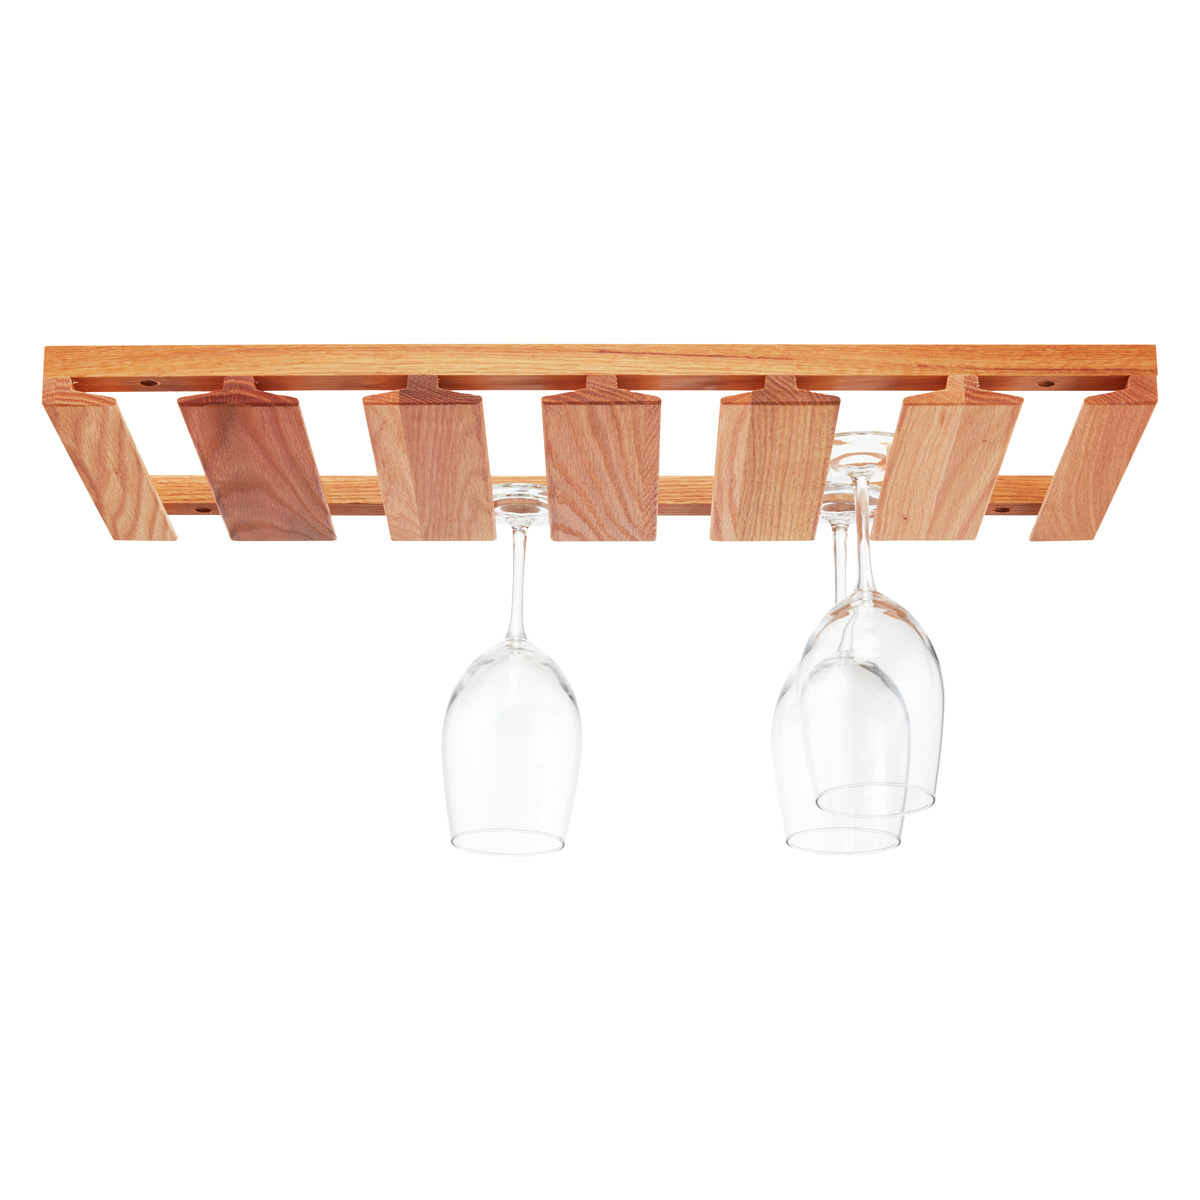 Vintage oak hanging wine glass rack #3